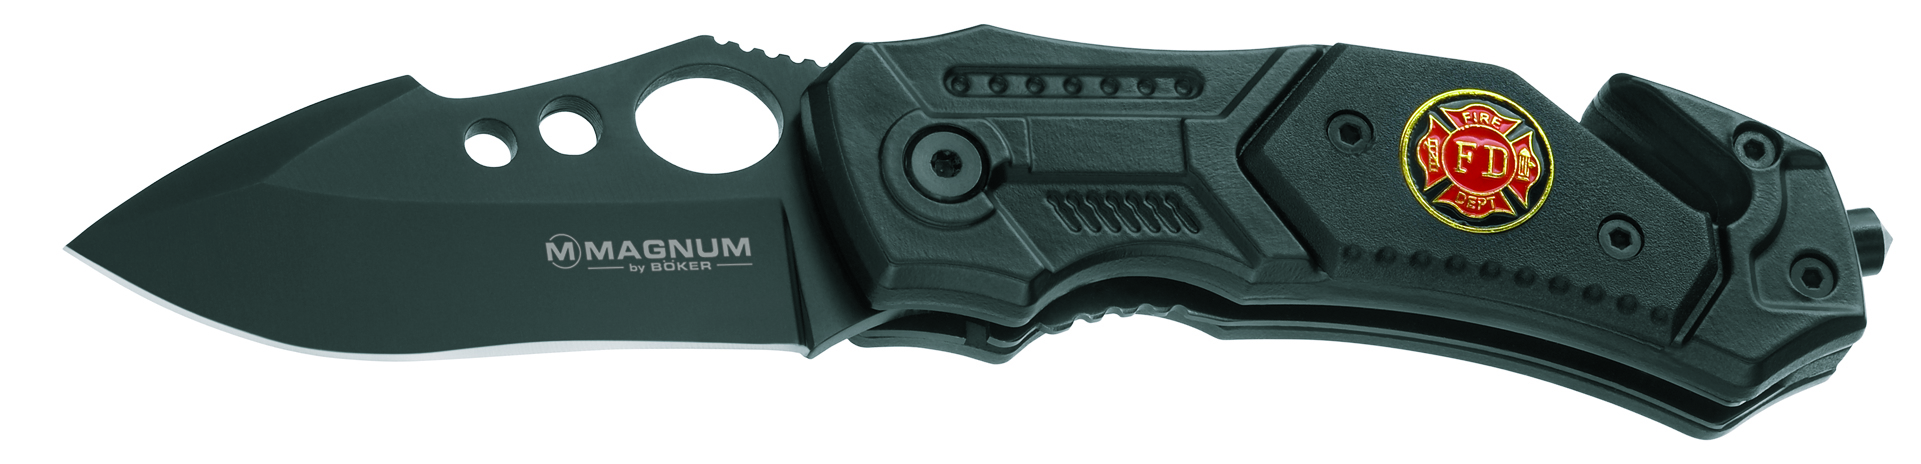 01RY409 - BOKER  MAGNUM FIRE ANT